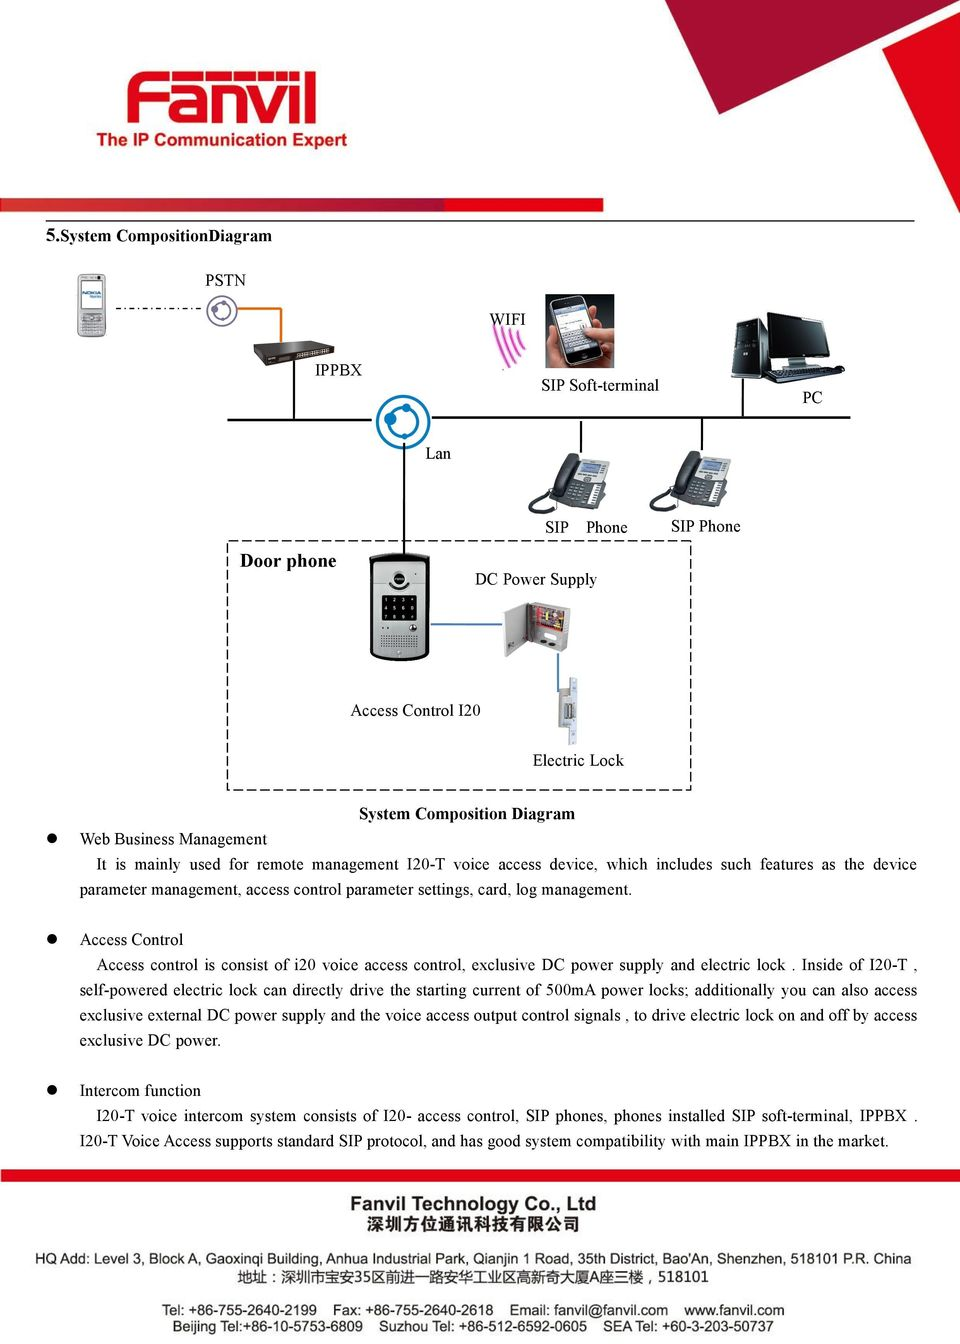 Access Control Access control is consist of i20 voice access control, exclusive DC power supply and electric lock.